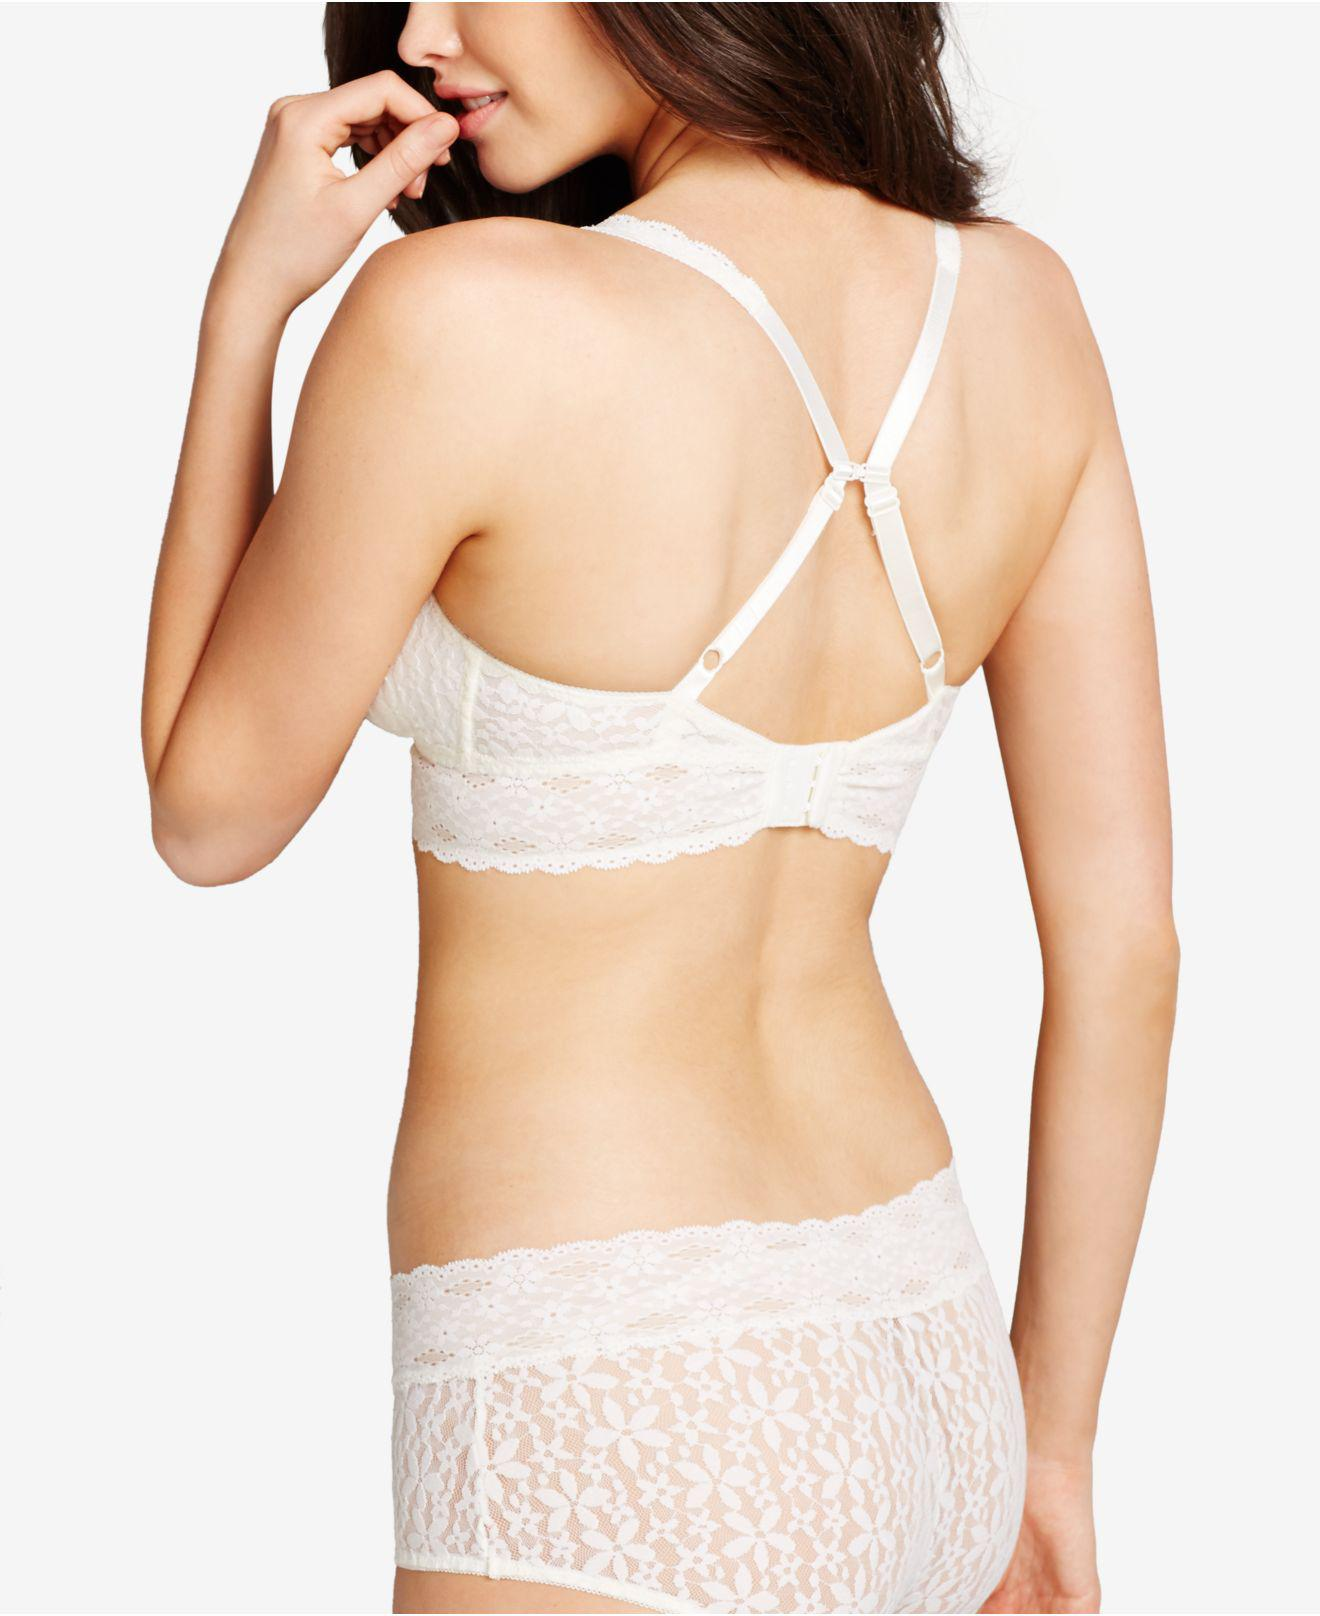 1a5f828674 Lyst - Wacoal Halo Lace Bralette in White - Save 40%